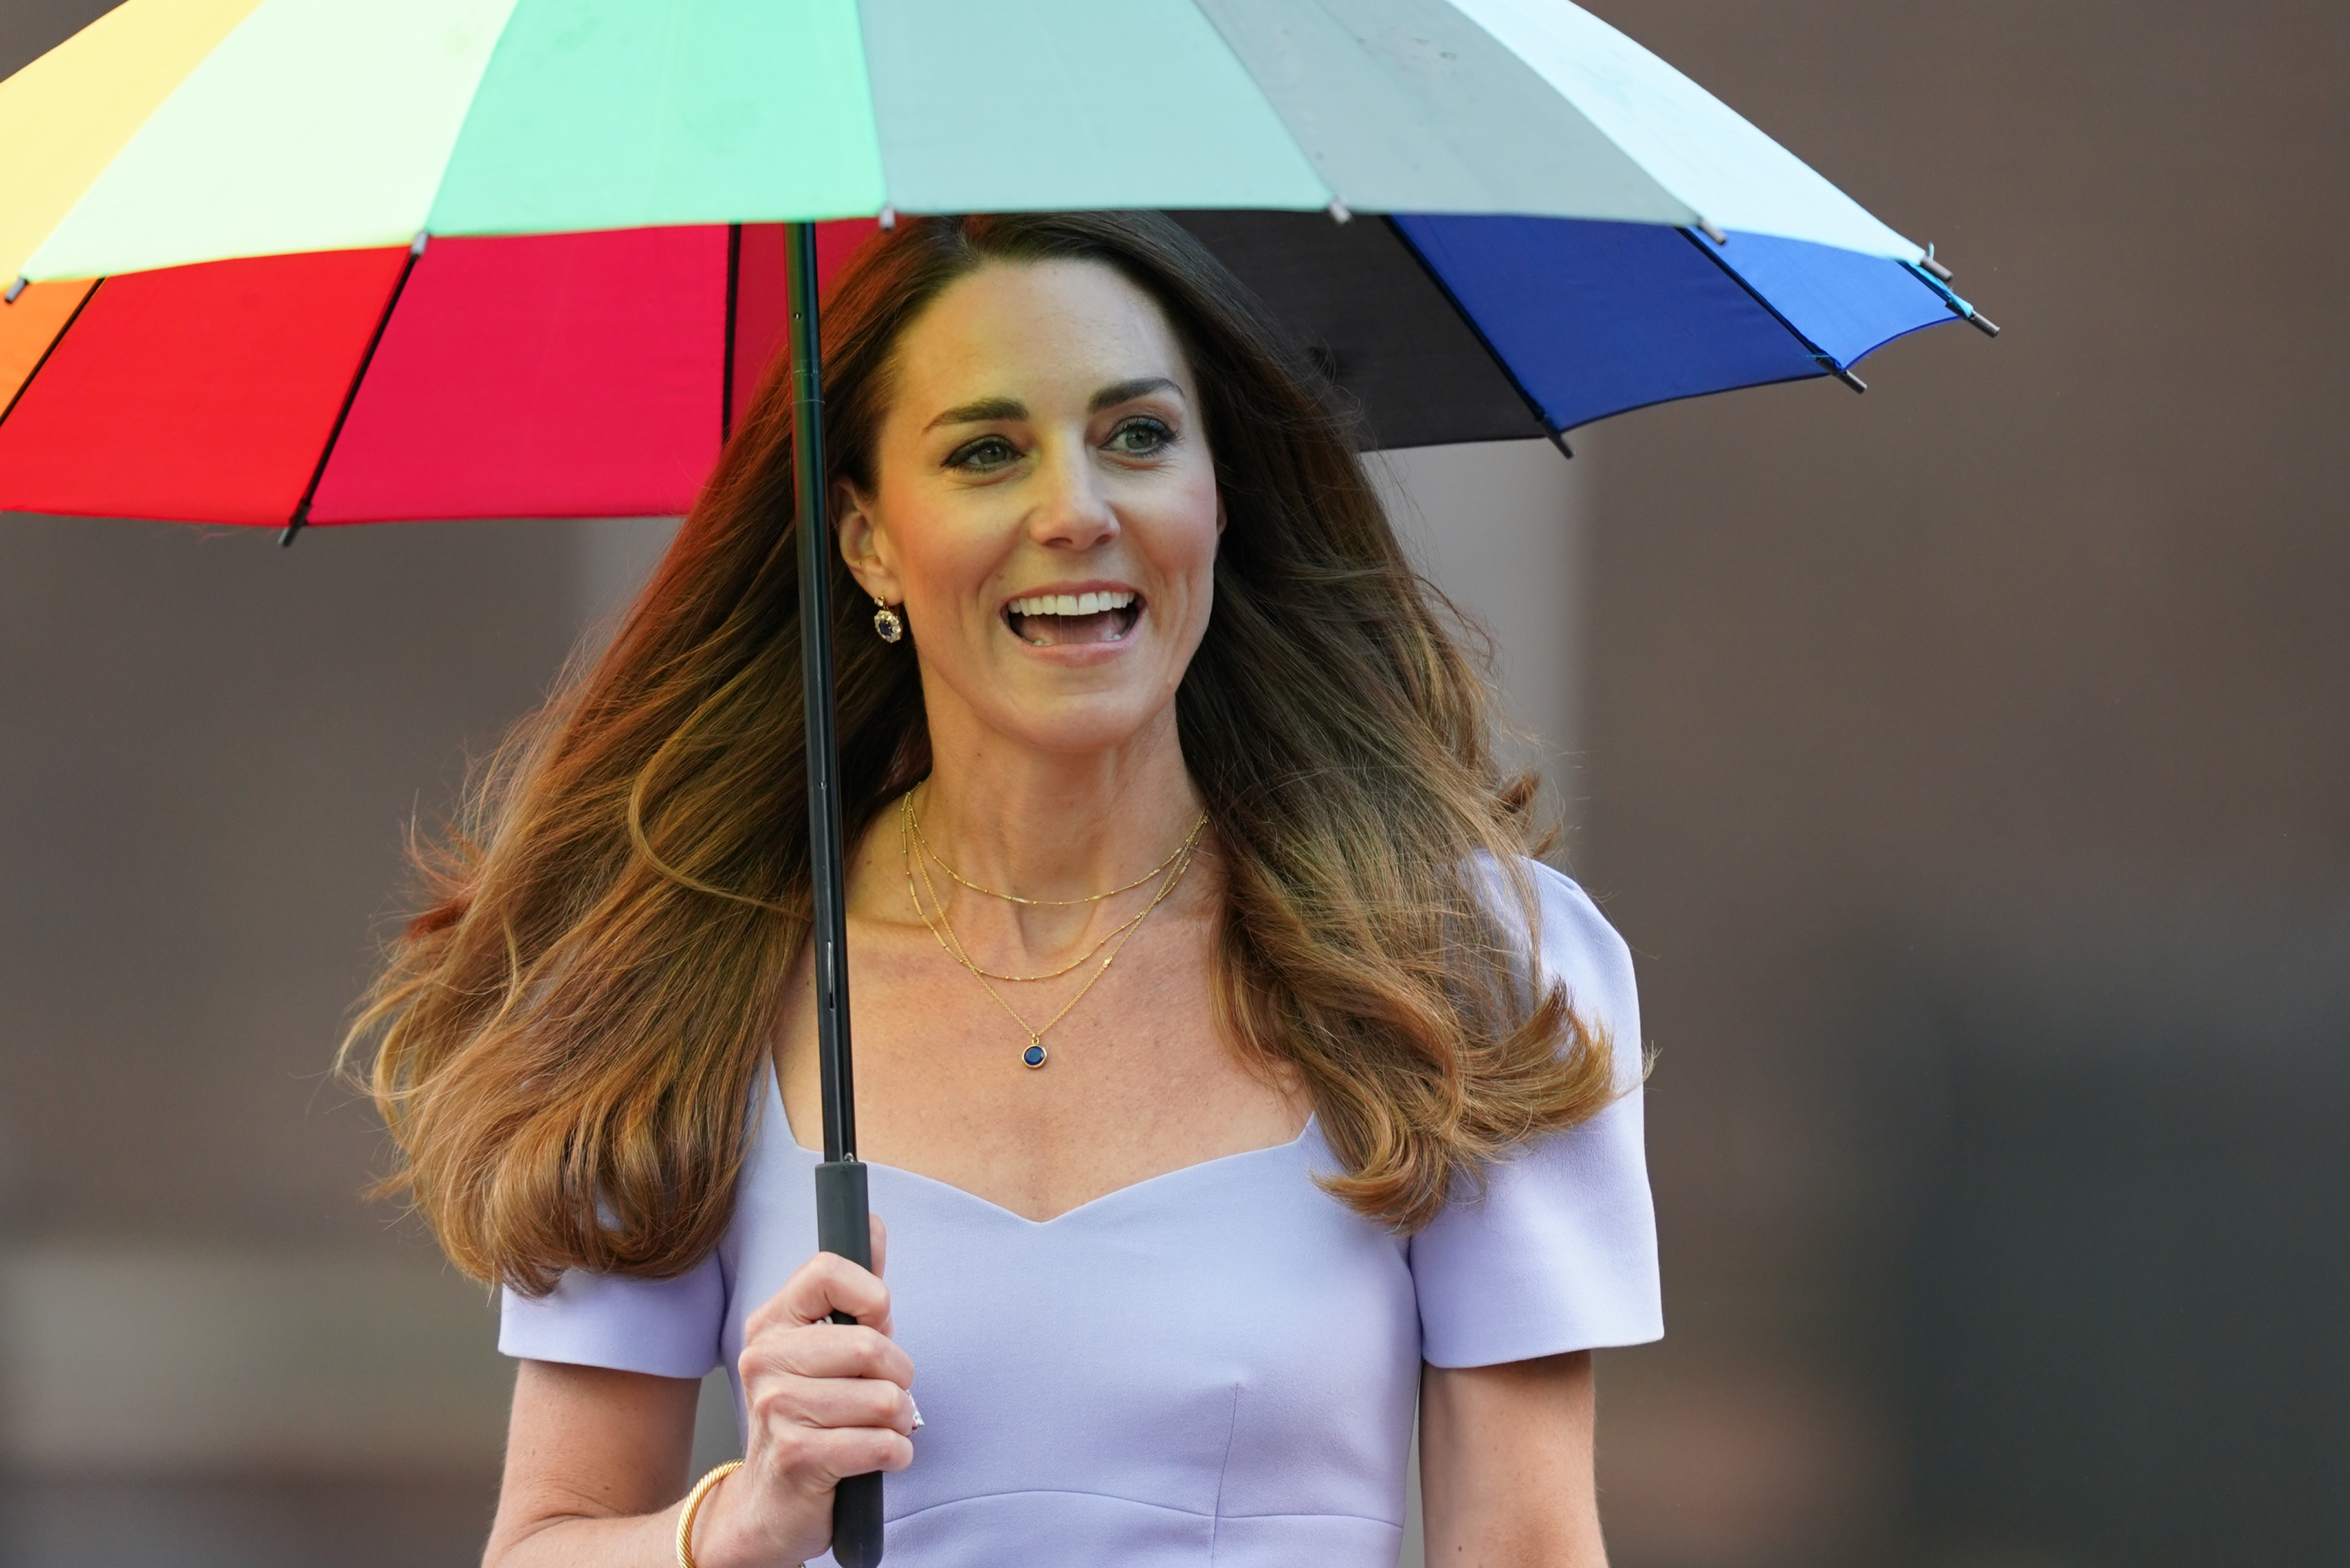 <p>The Duchess of Cambridge arrives at Kensington Palace in London for a reception for parents of users of a Centre for Early Childhood, on the day of the launch of the Royal Foundation Centre for Early Childhood. Picture date: Friday June 18, 2021.</p>